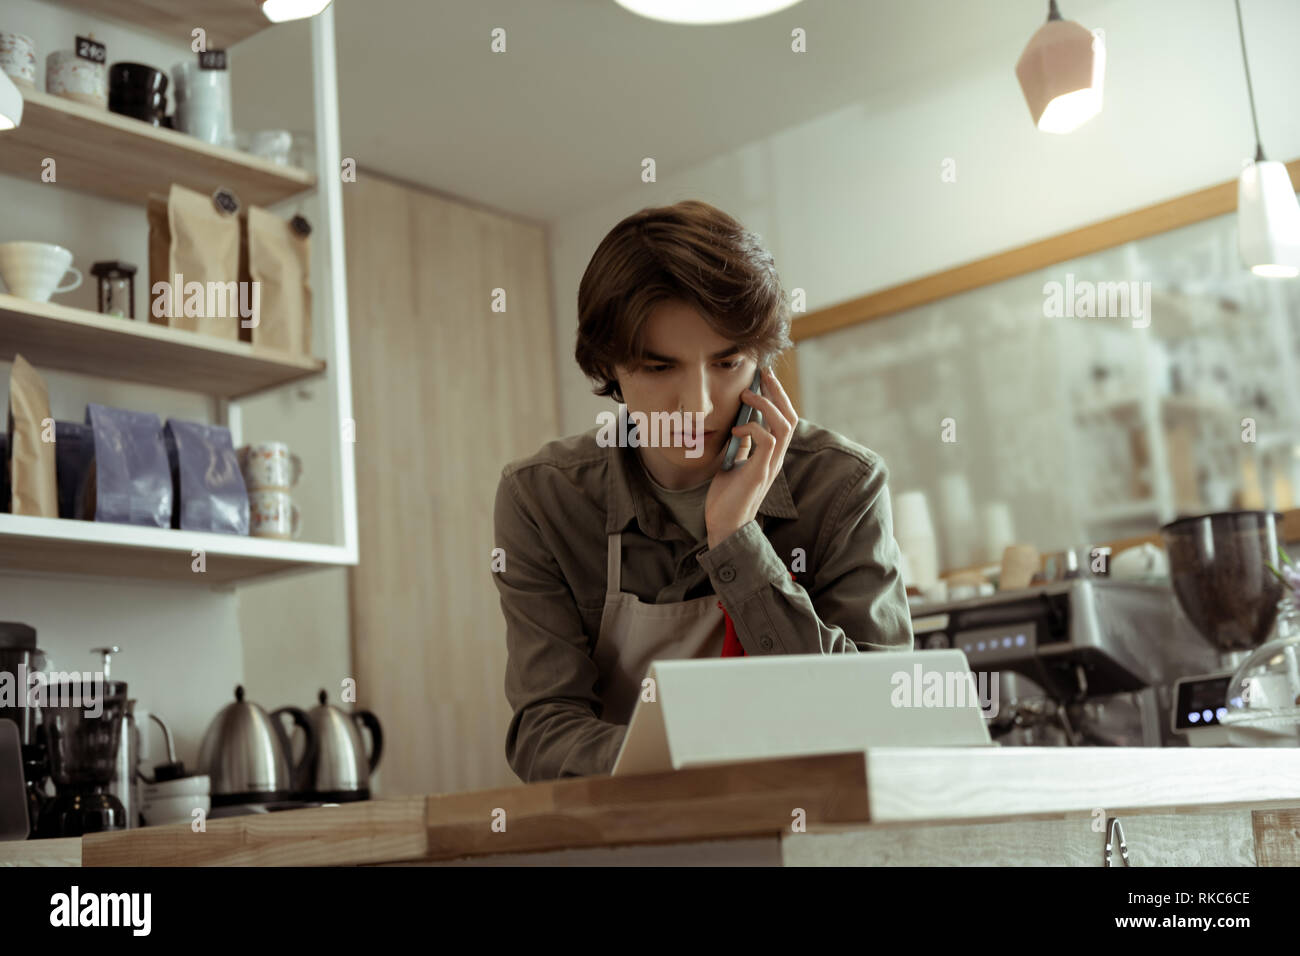 Attentive good-looking man discussing work moment on mobile phone - Stock Image